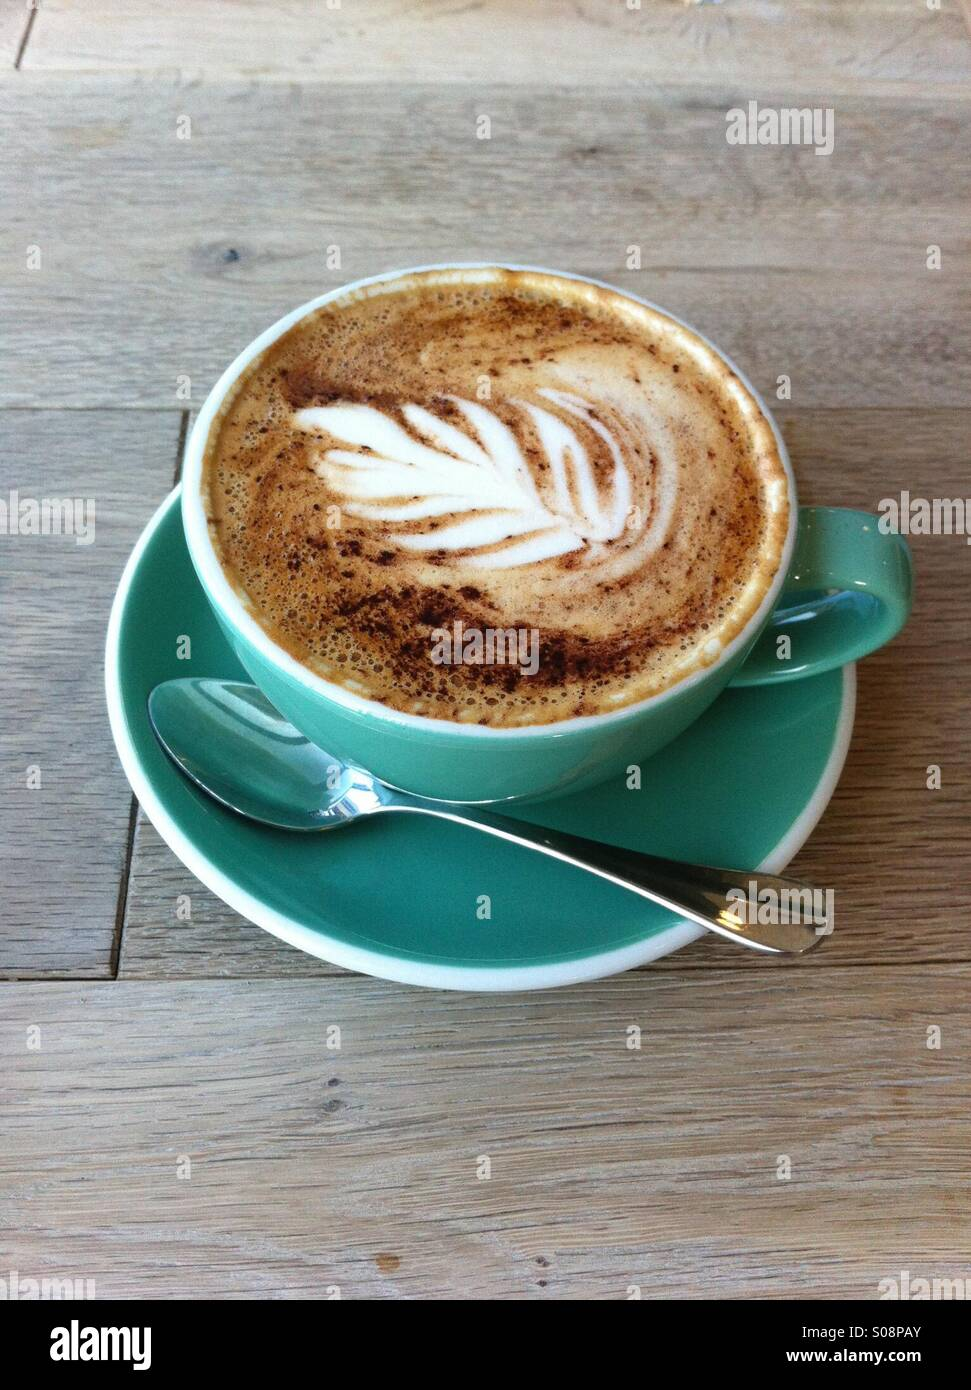 A cup of latte with art on top of it - Stock Image